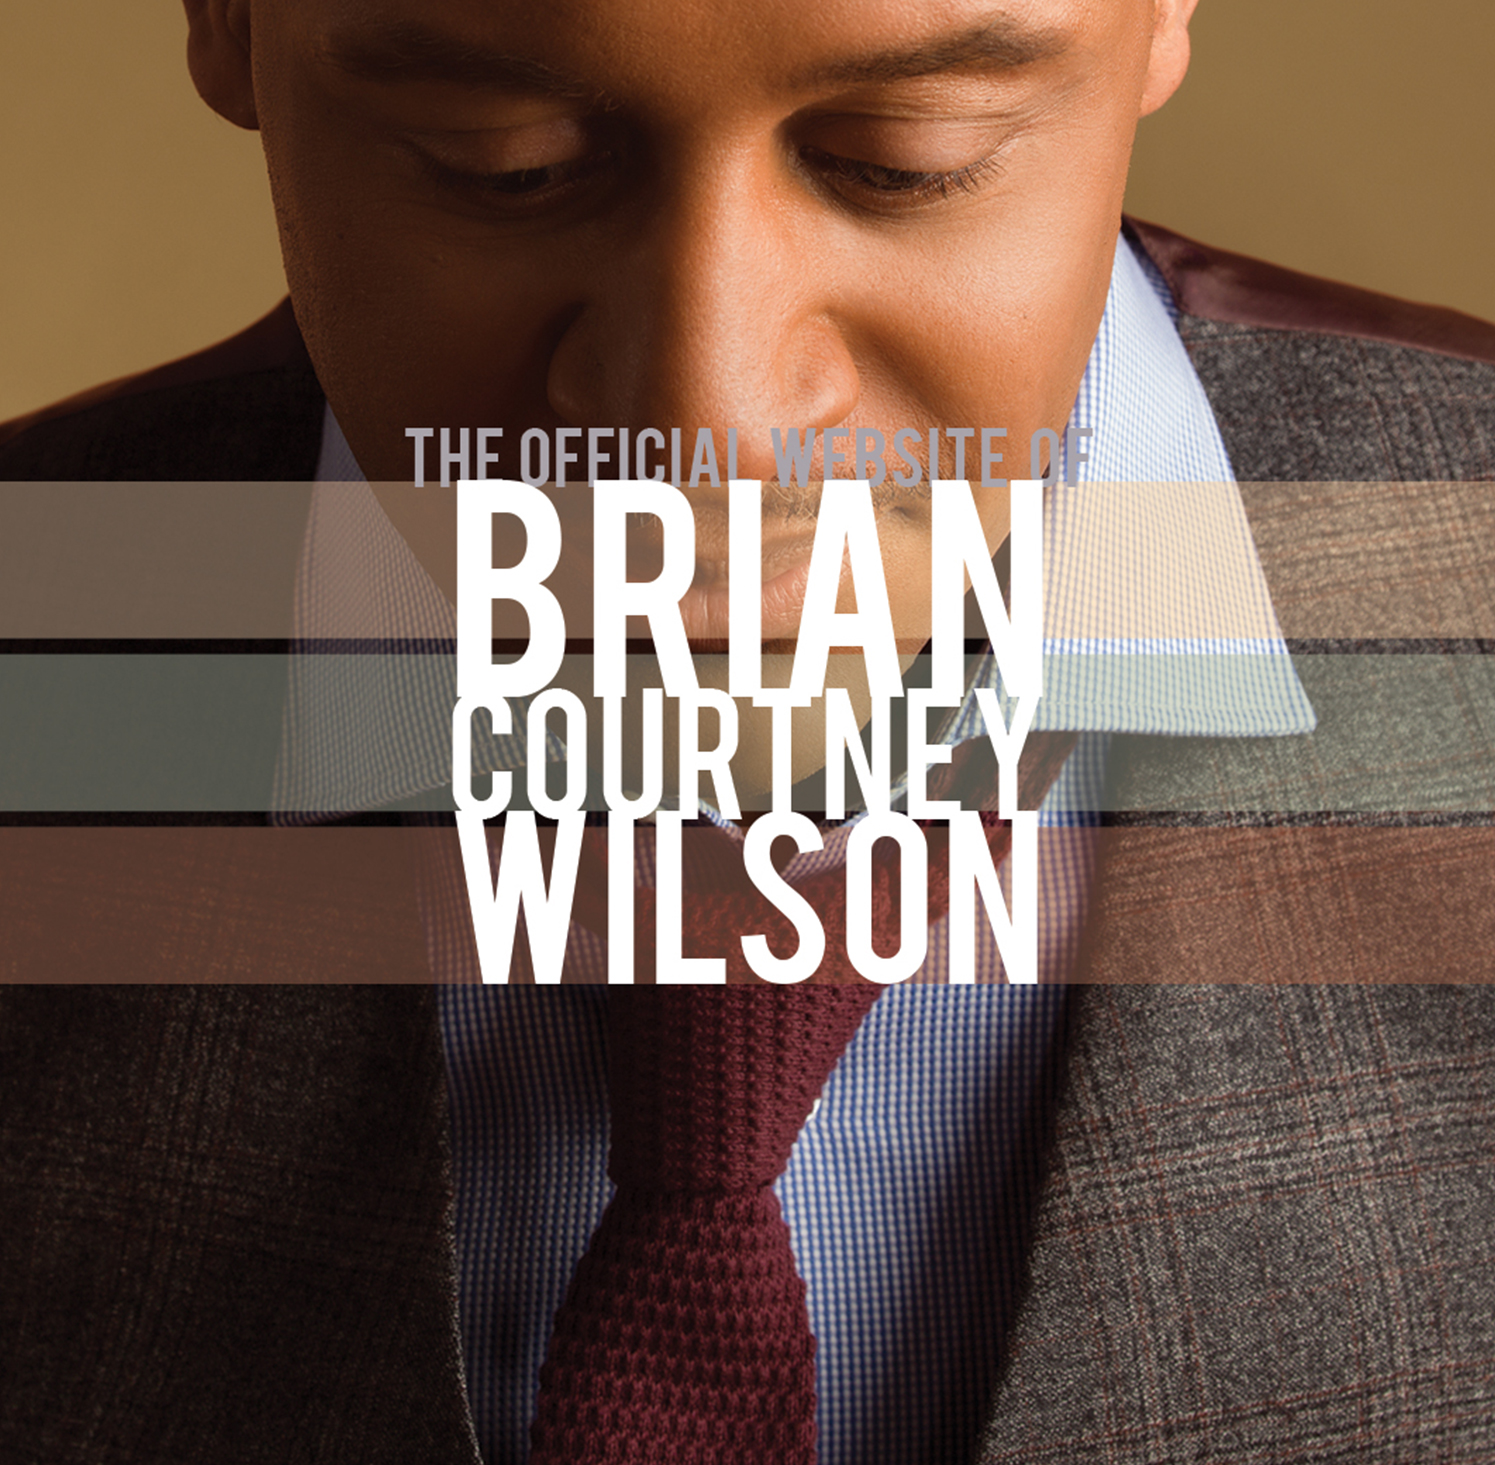 Welcome to the Official Website of Brian Courntey Wilson